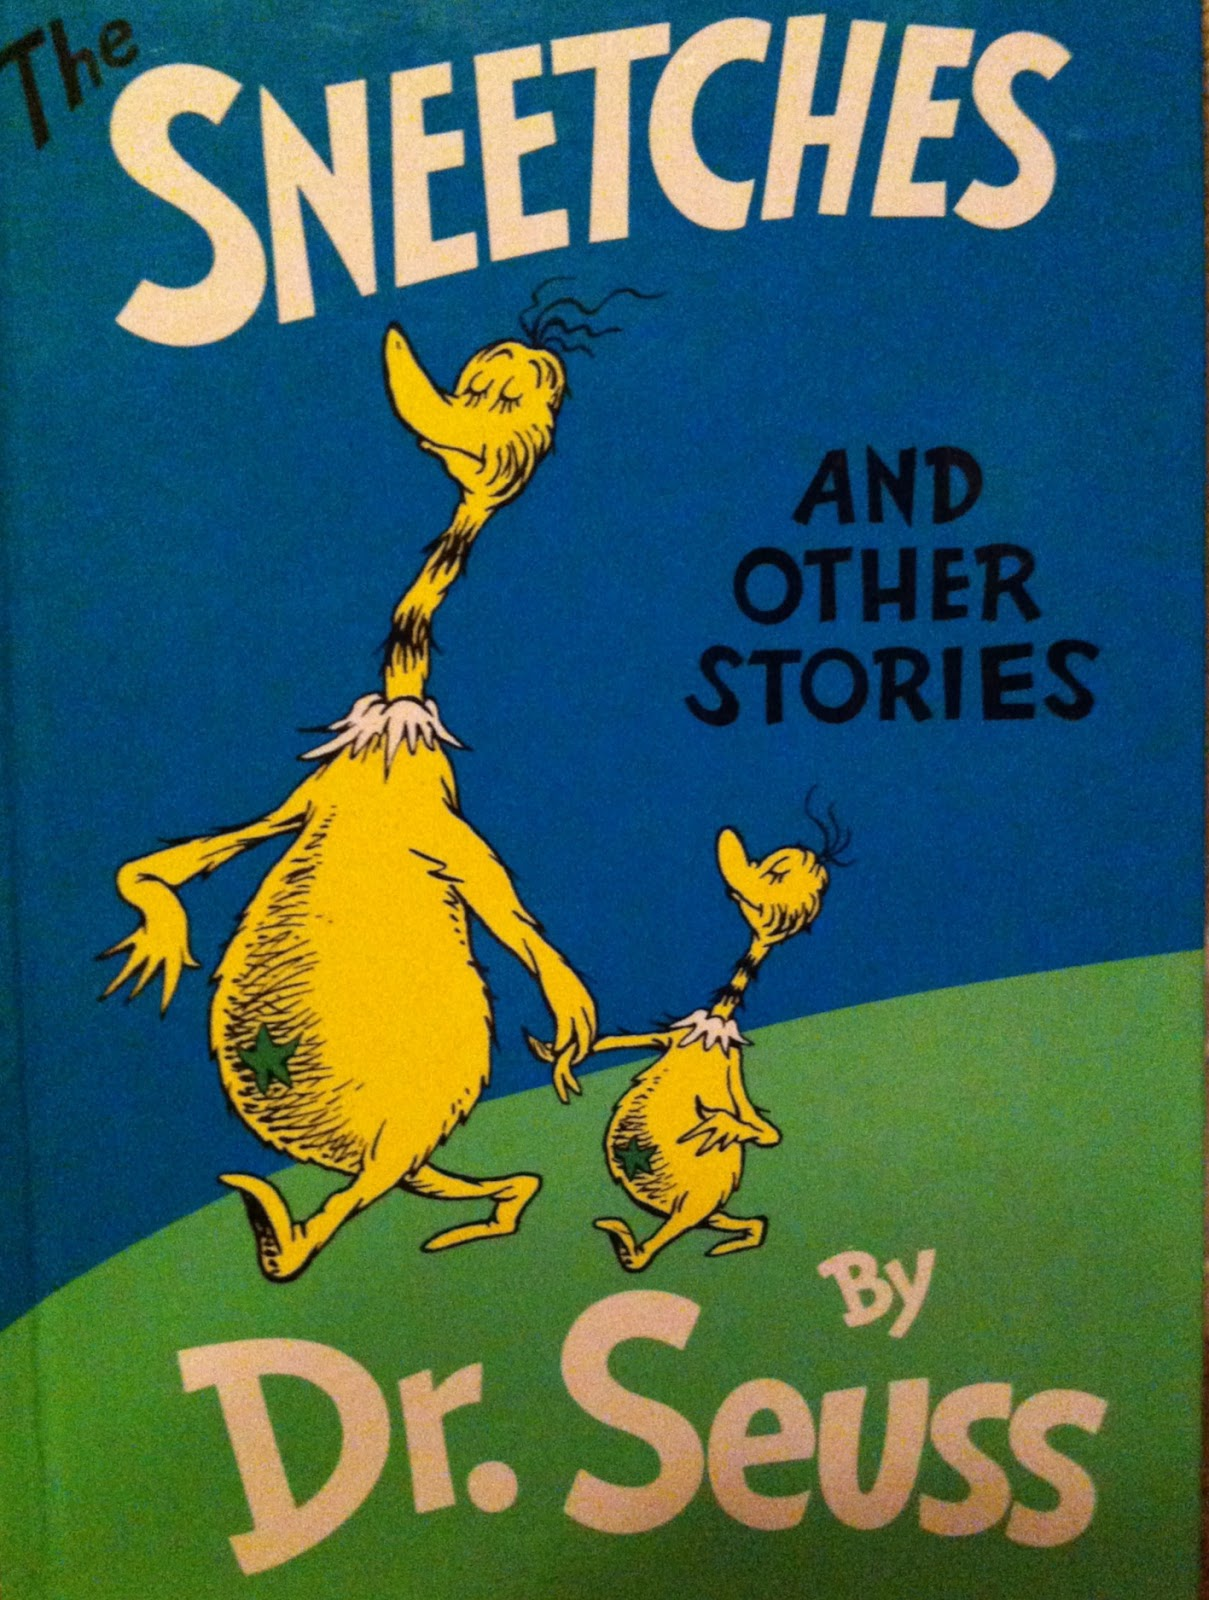 Stacy S Jensen Perfect Picture Book The Sneetches